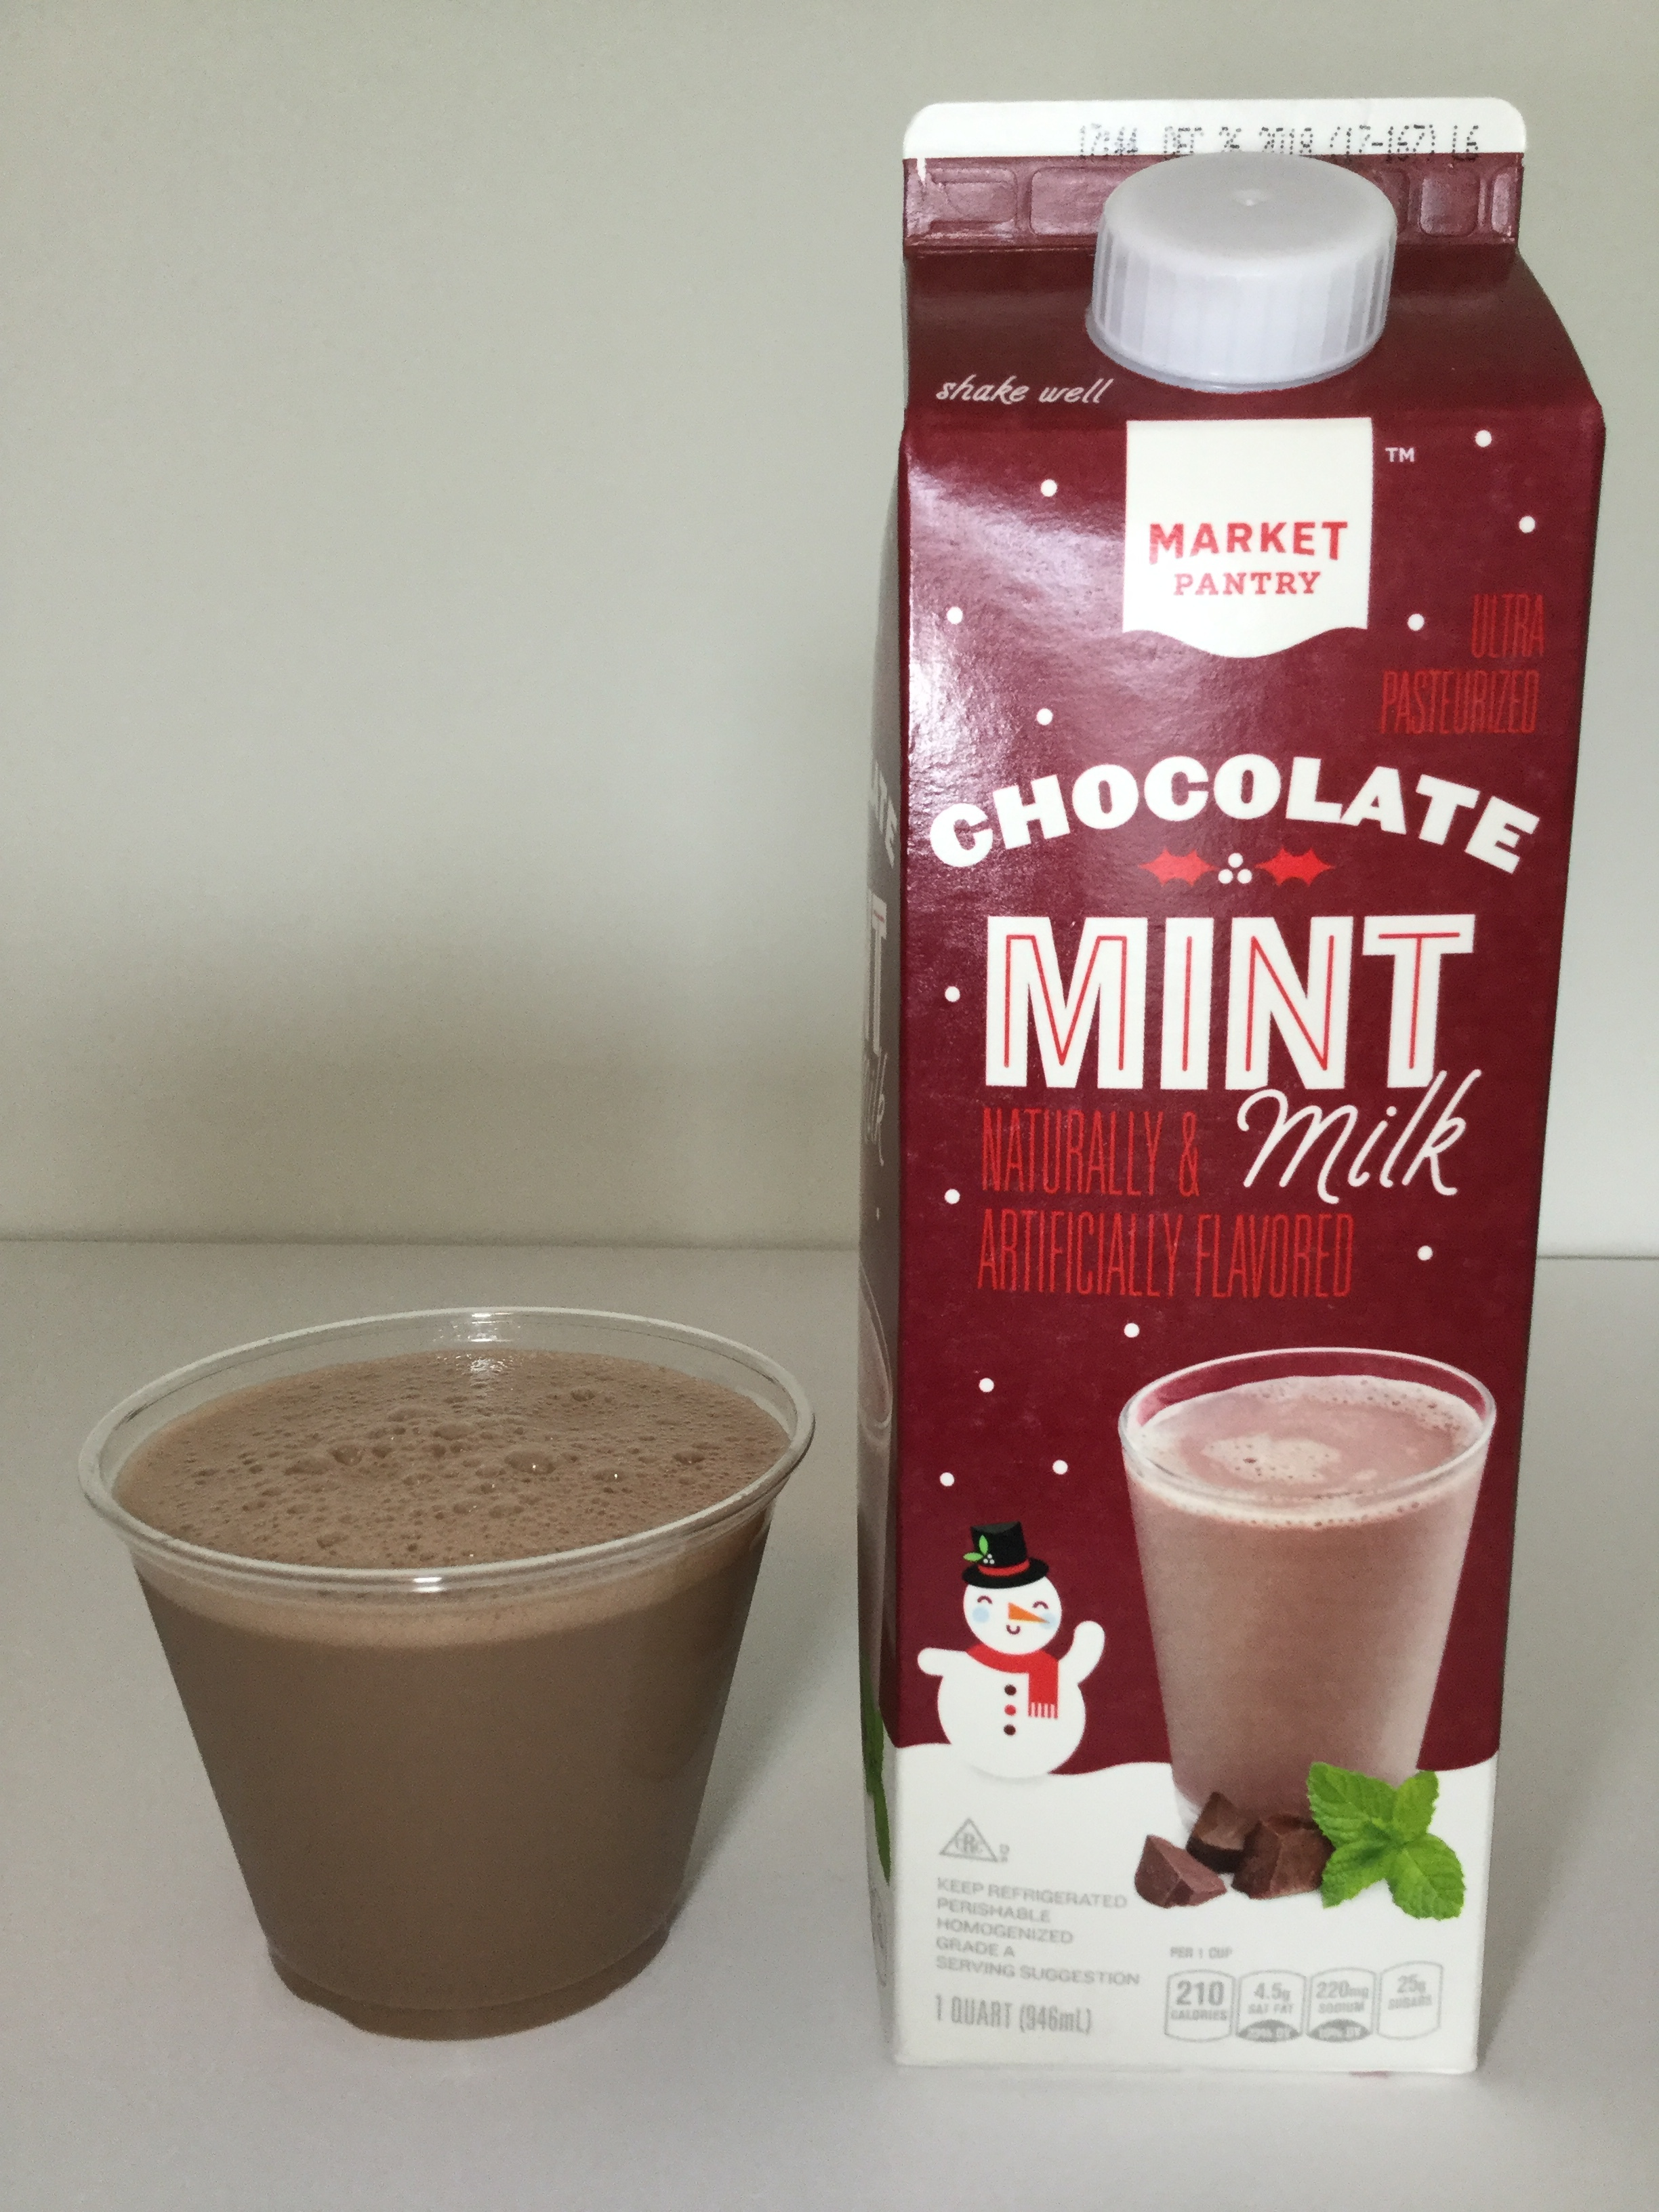 Market Pantry Chocolate Mint Milk Cup